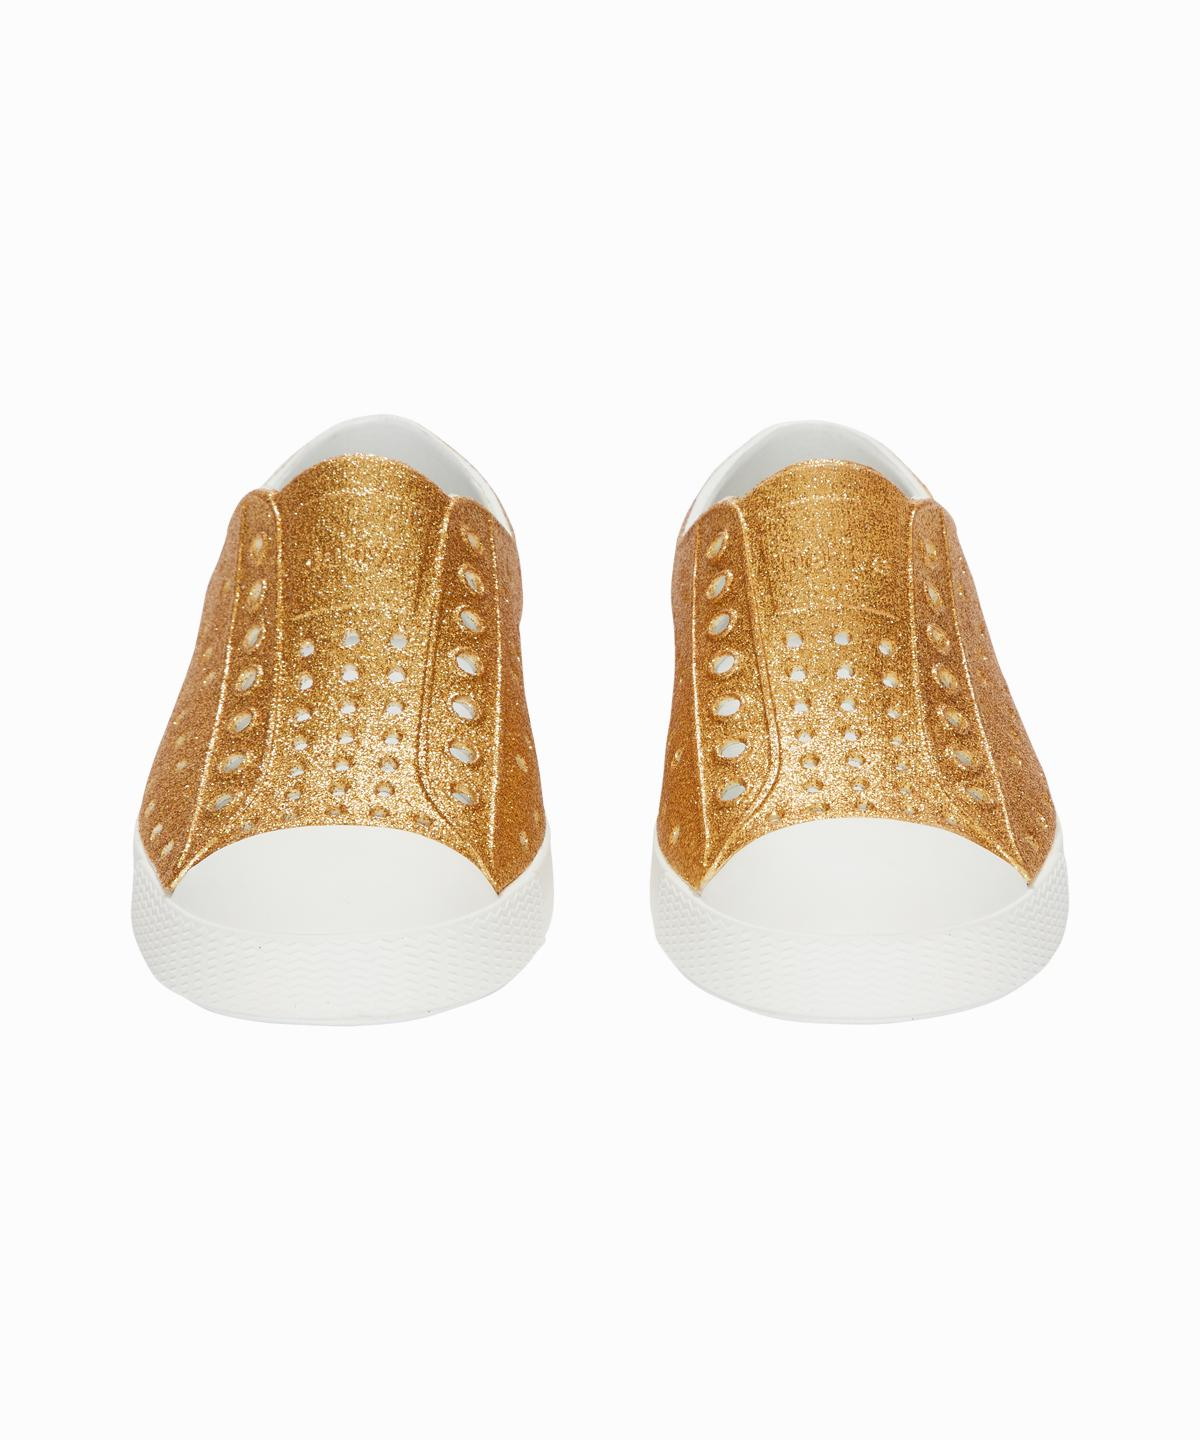 Jefferson Gold Glitter Slip-On Sneakers